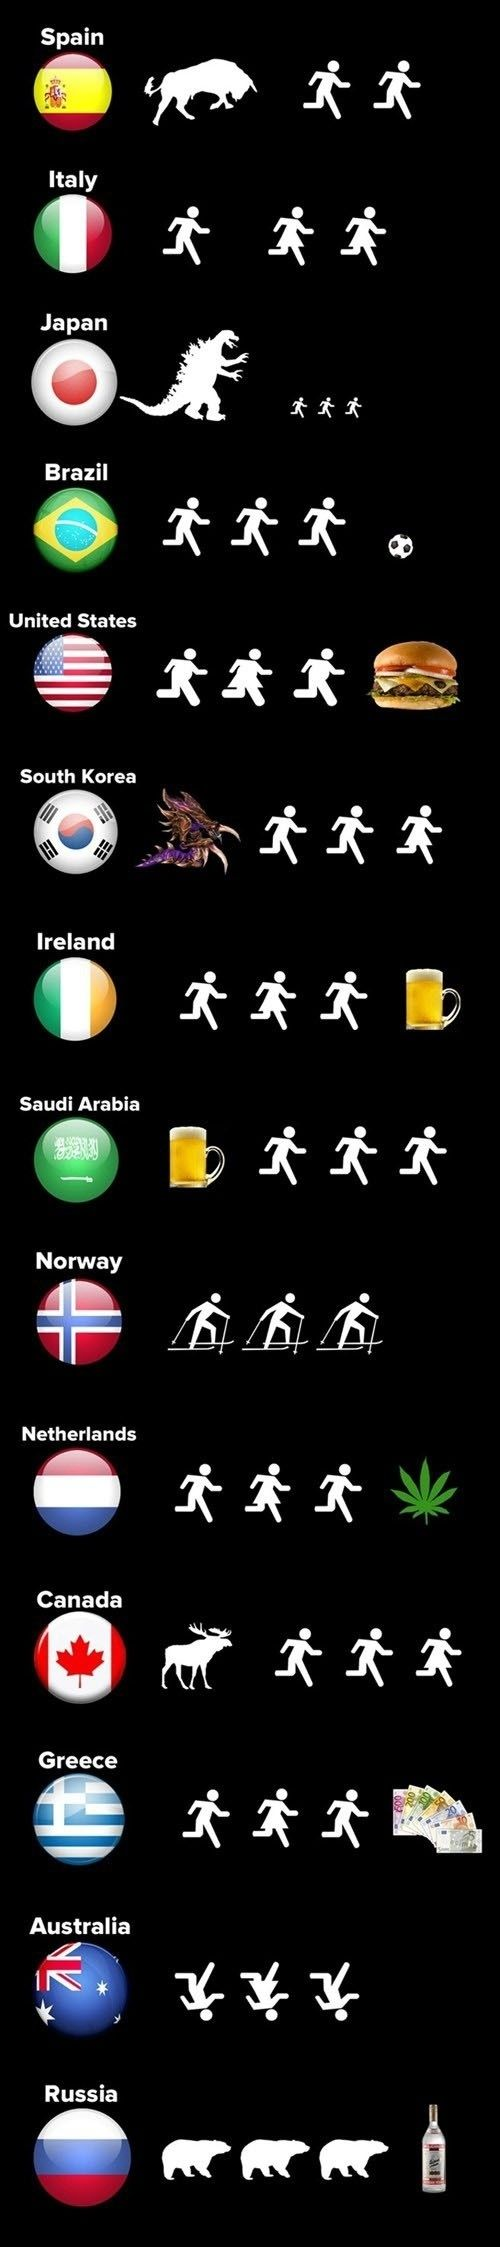 I'm Irish and live in the US...lmao those two pics pretty much sum it up for me hahaha how sad